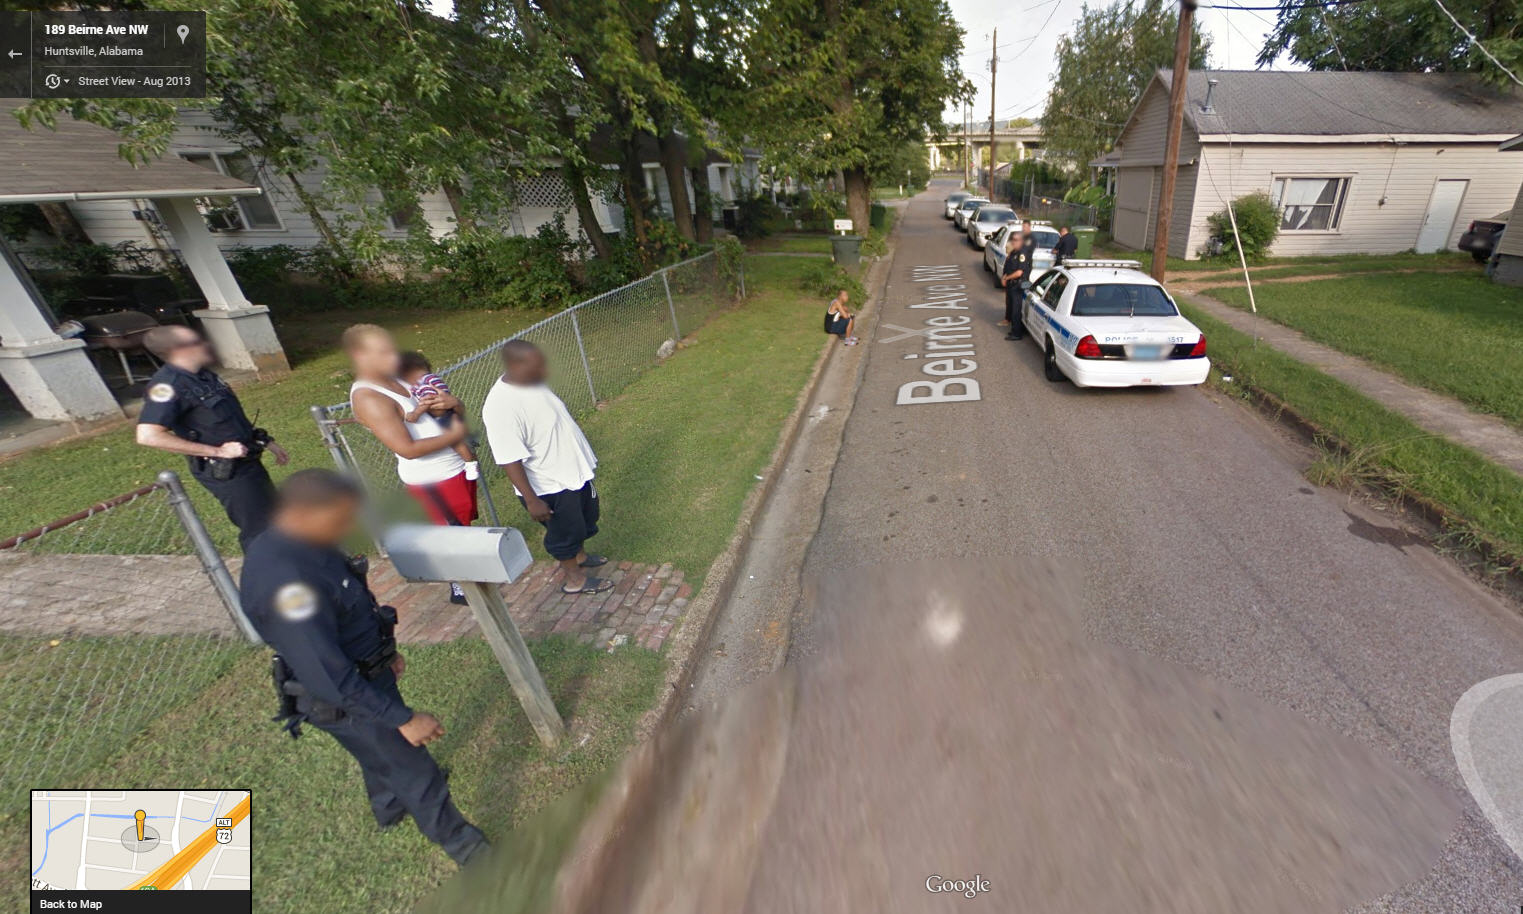 Police Arrest care of Google Street View